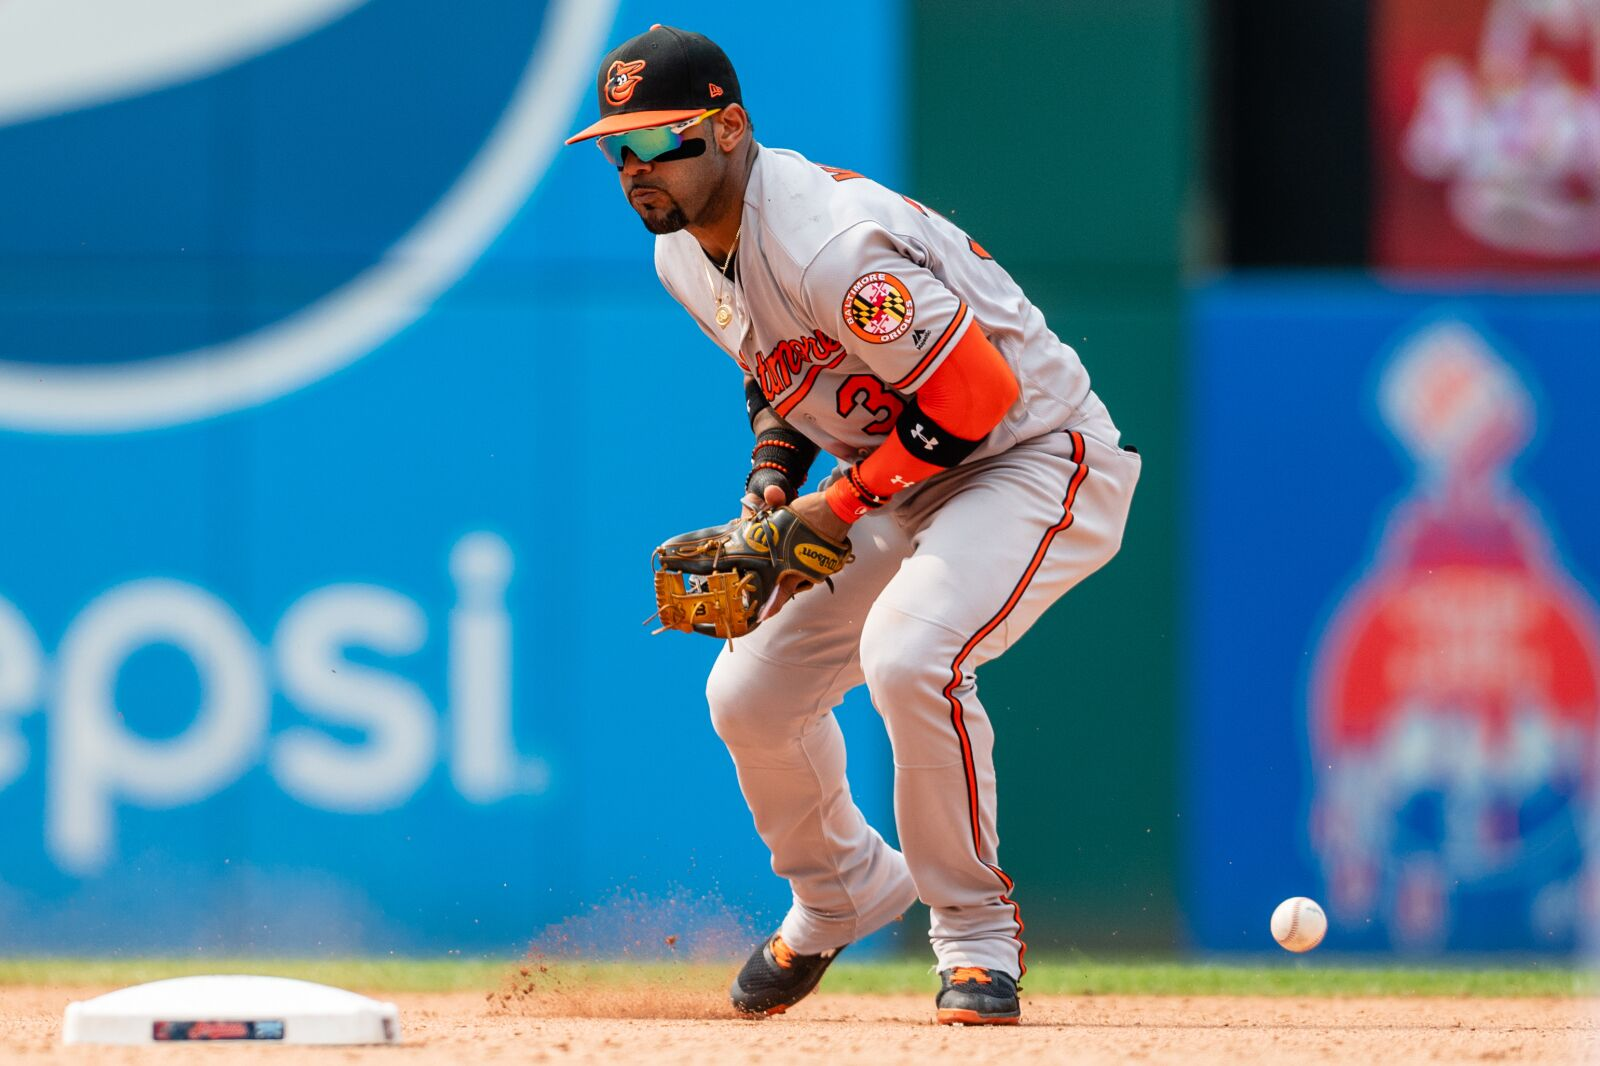 Baltimore Orioles: No Surprises With Rawlings Gold Glove Announcements